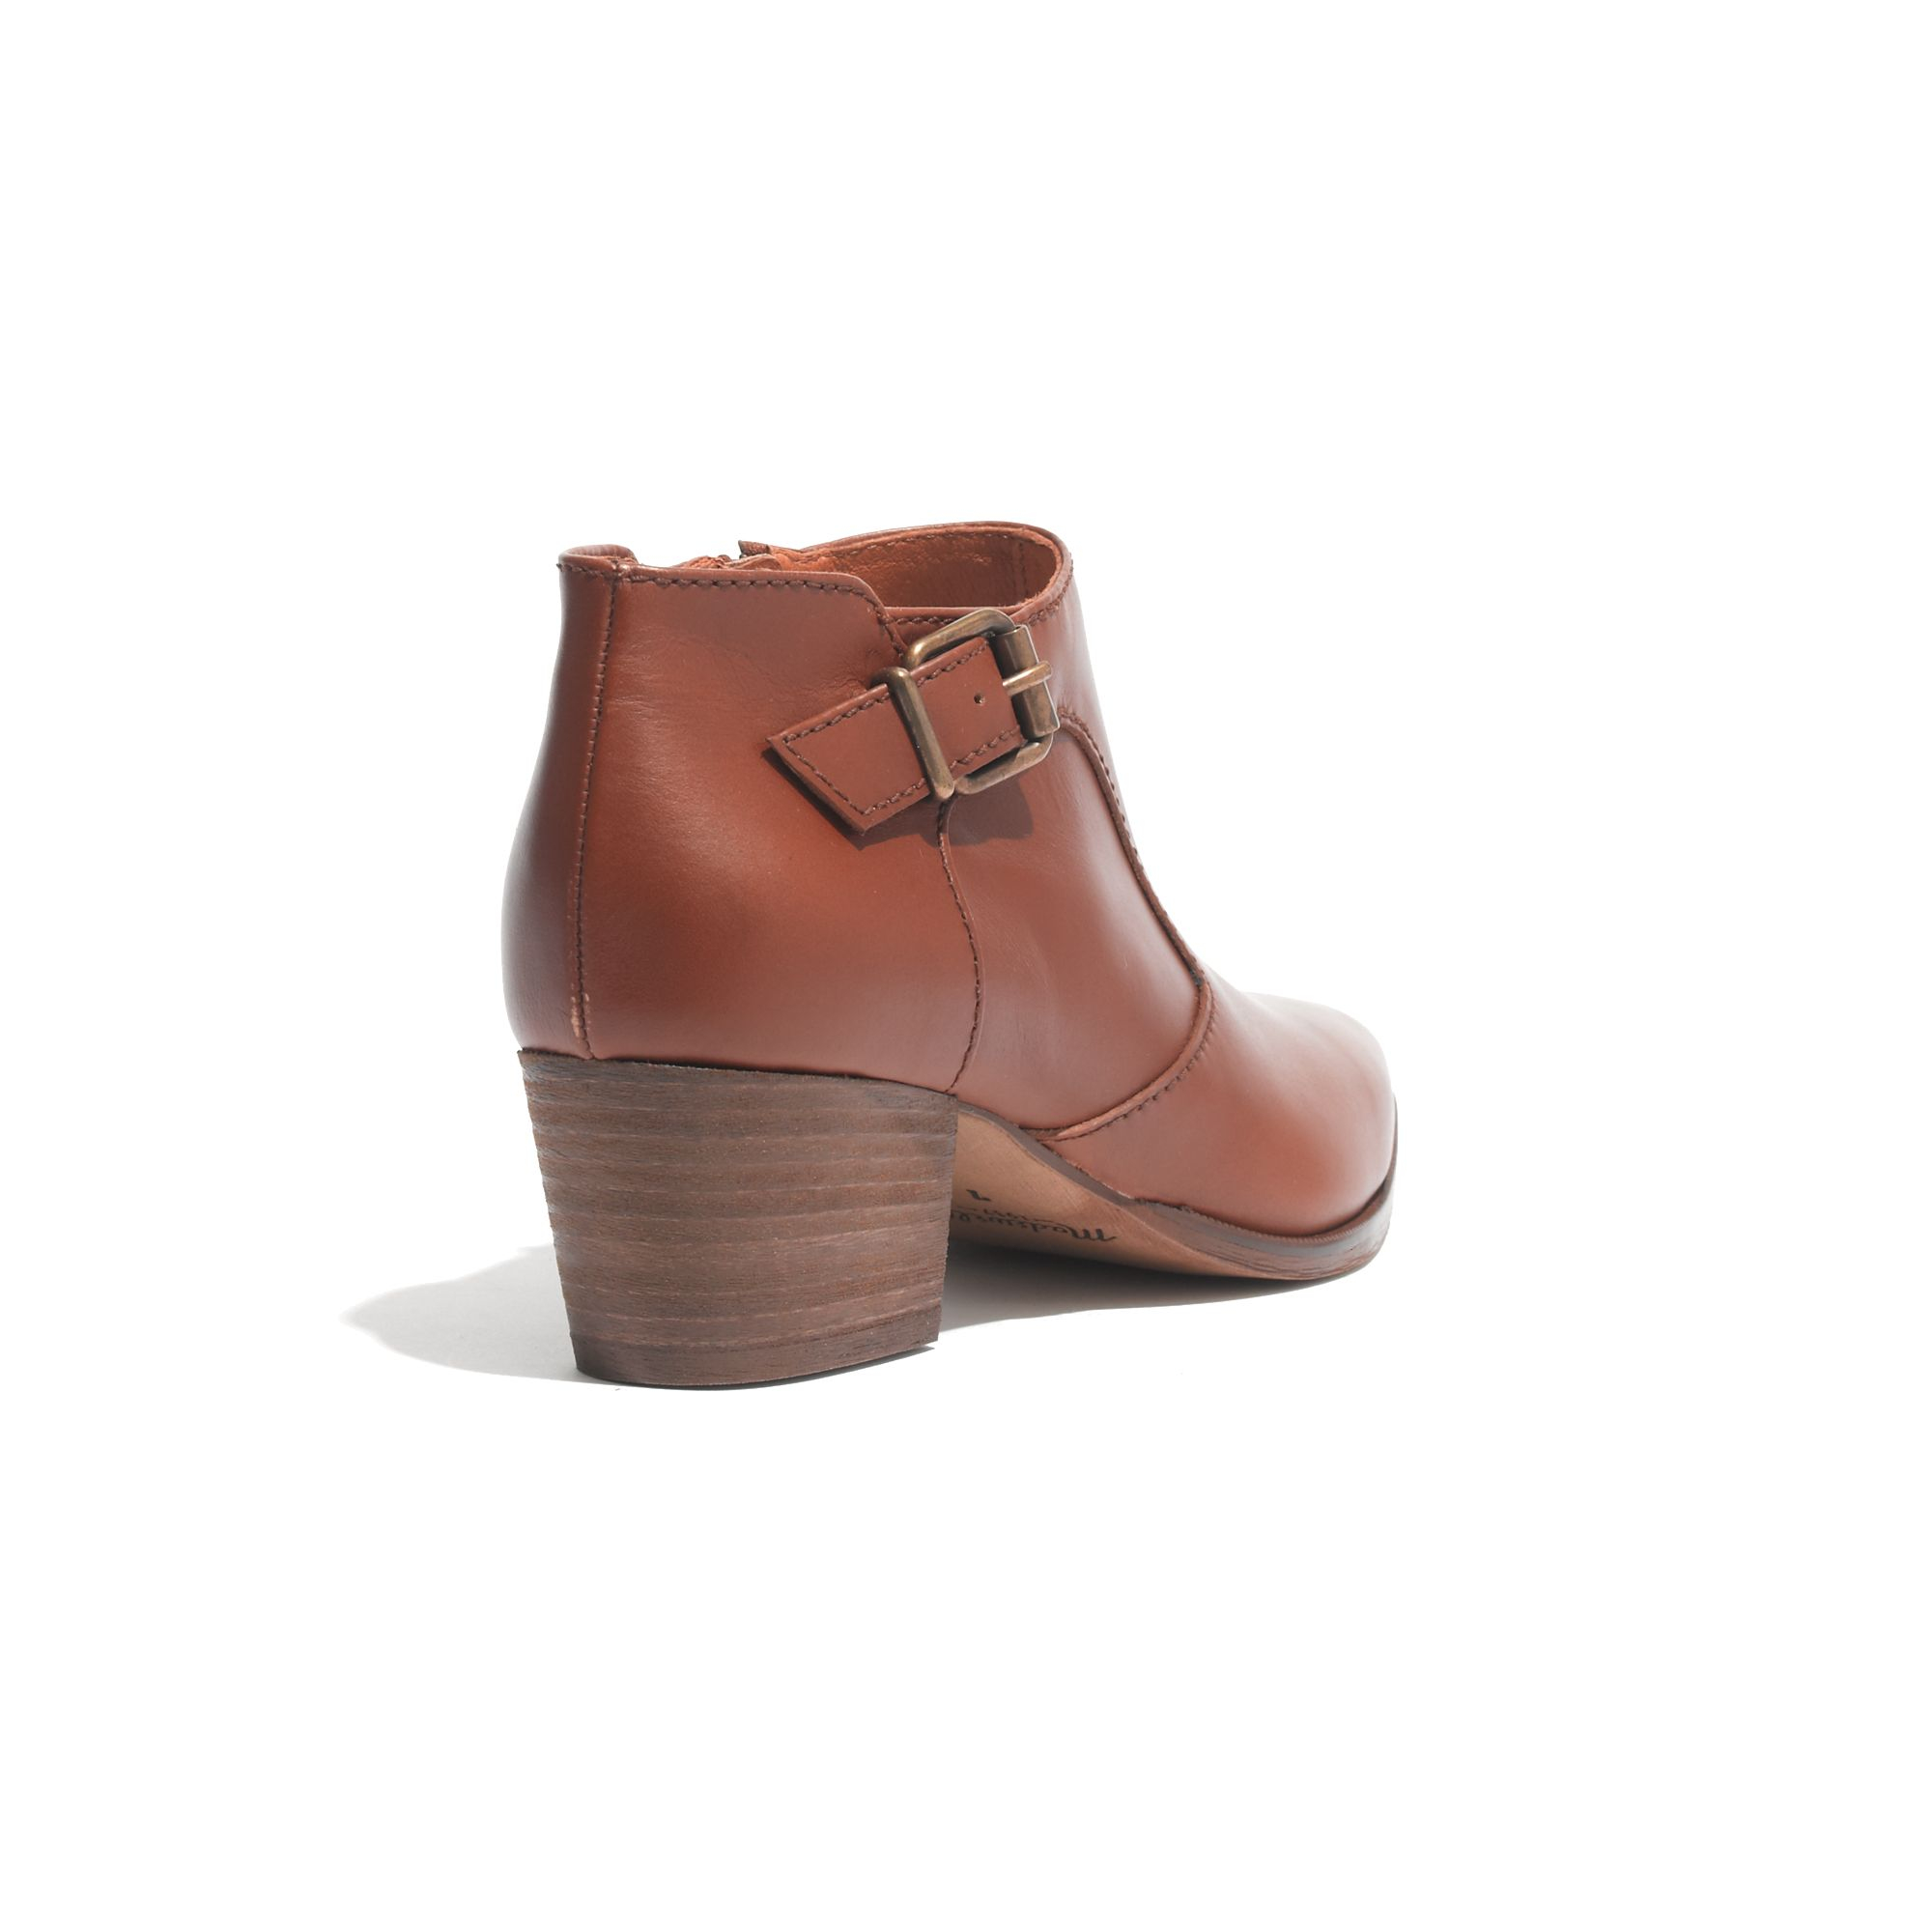 Madewell The Wes Boot in Brown